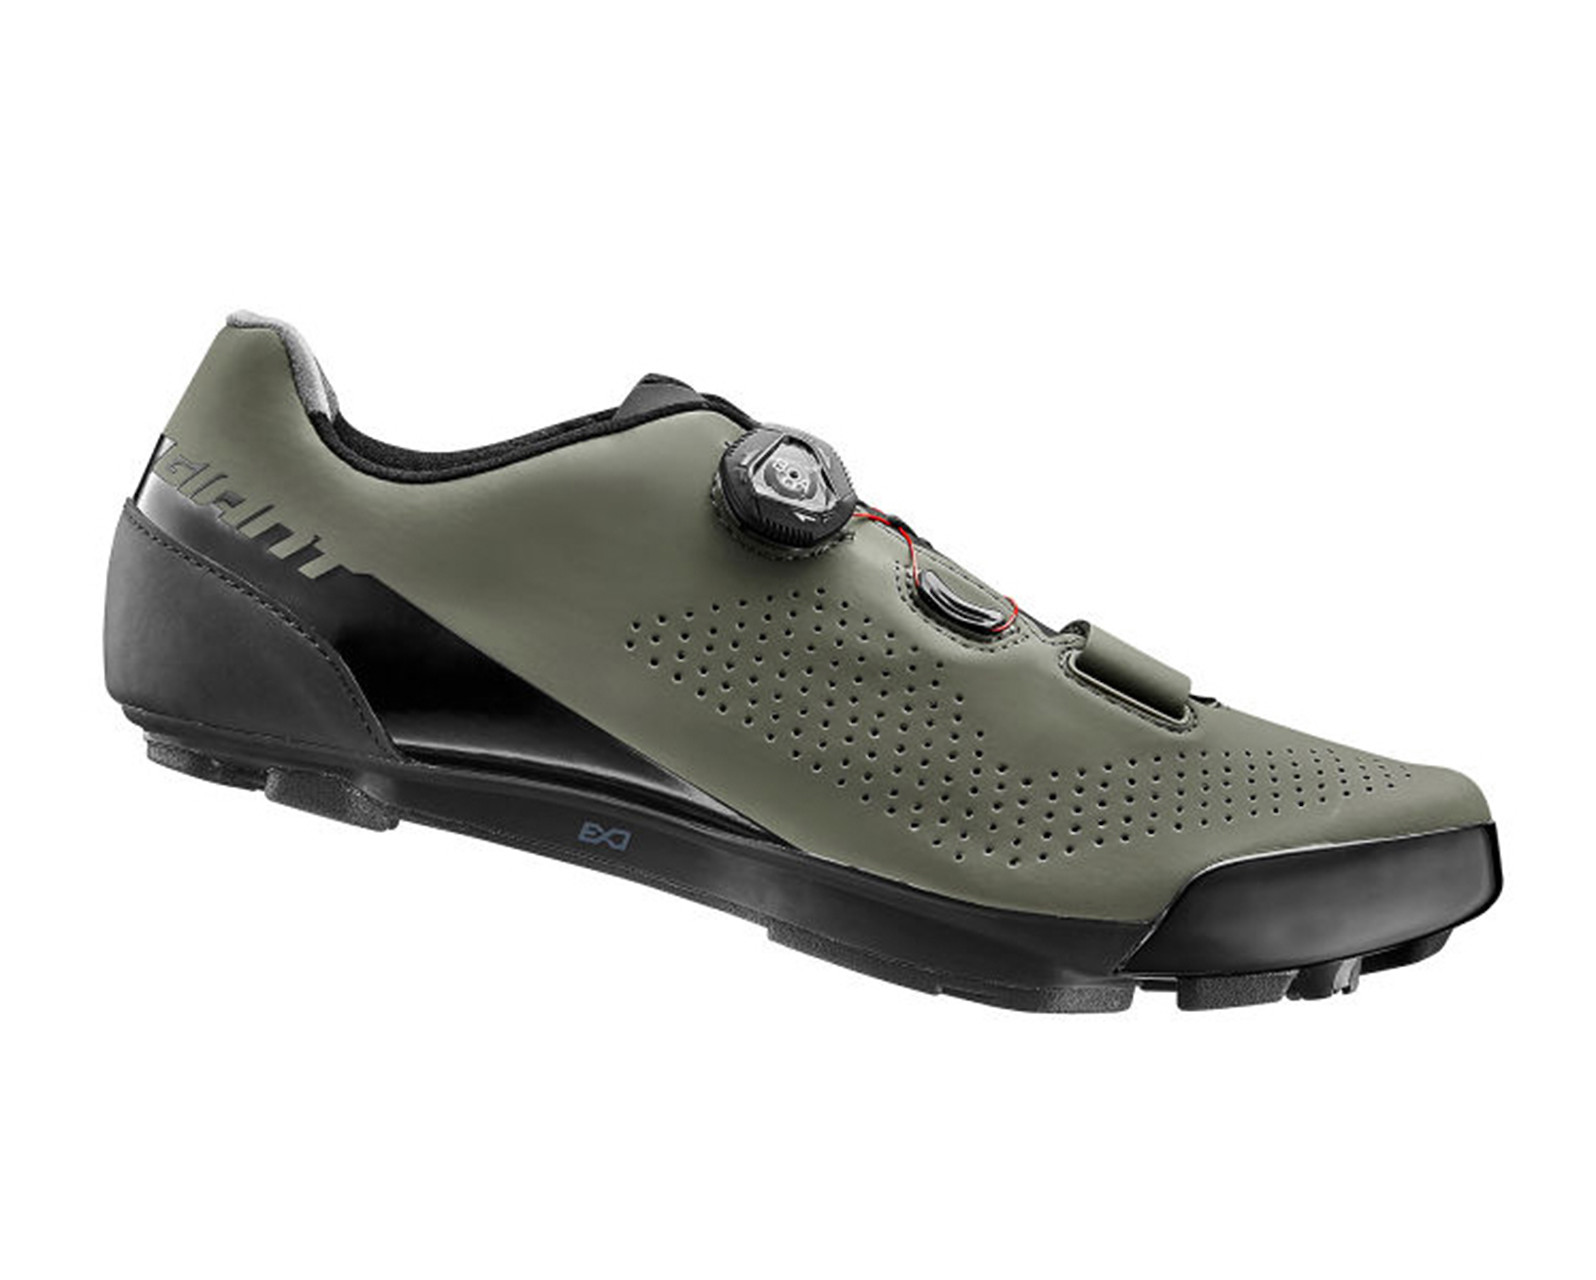 Giant Charge Elite Clipless Shoe (olive)